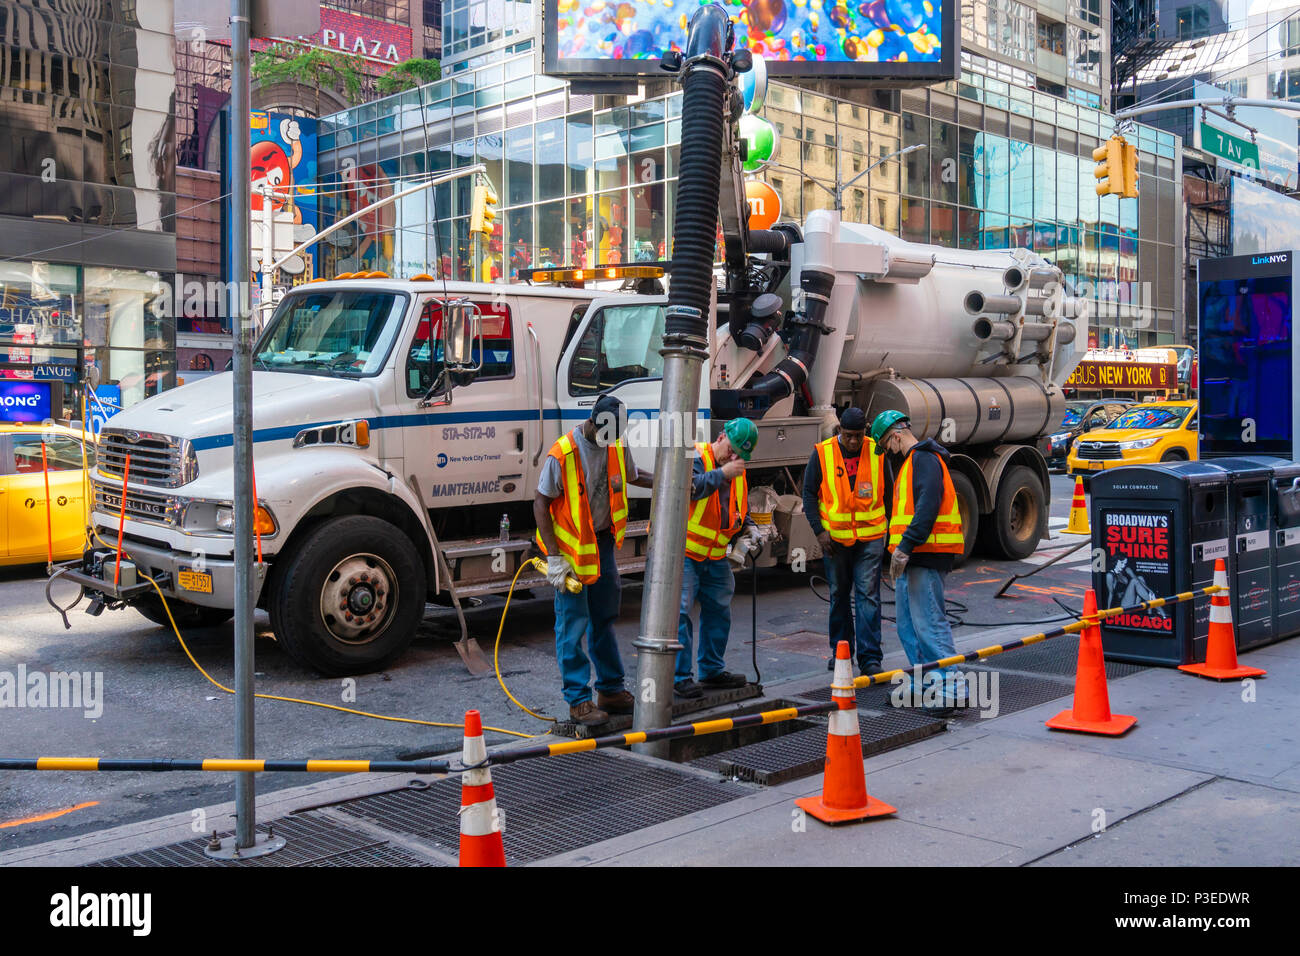 Workers cleaning sewer - Stock Image